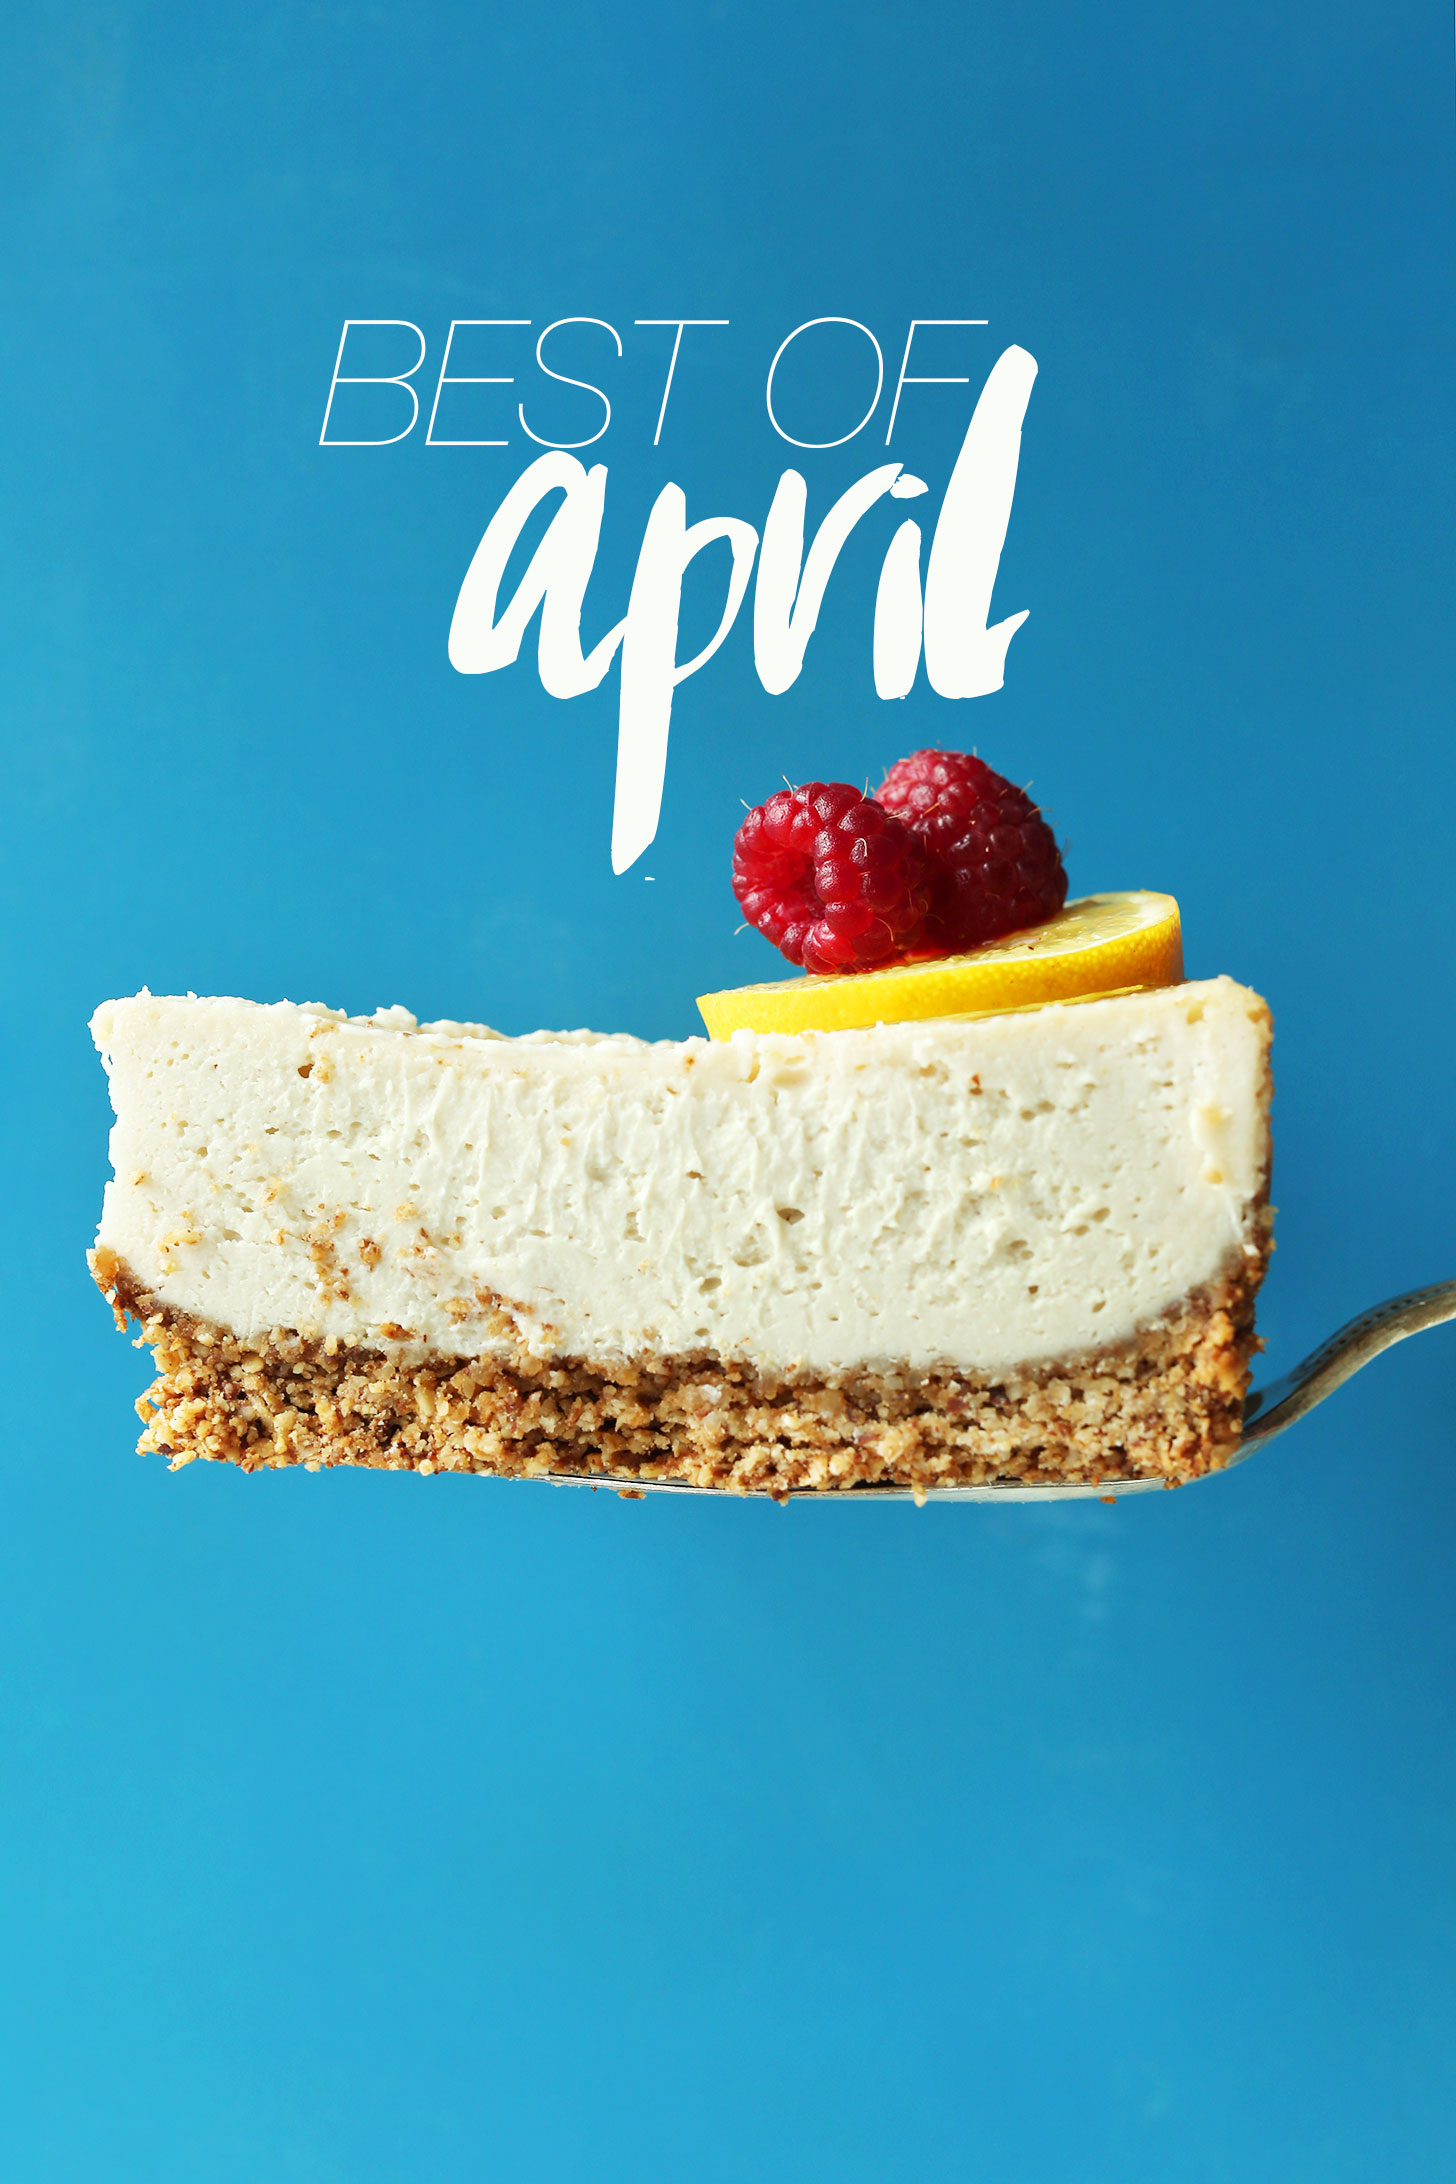 Slice of our Macadamia Nut Cheesecake for our Best of April recipe post